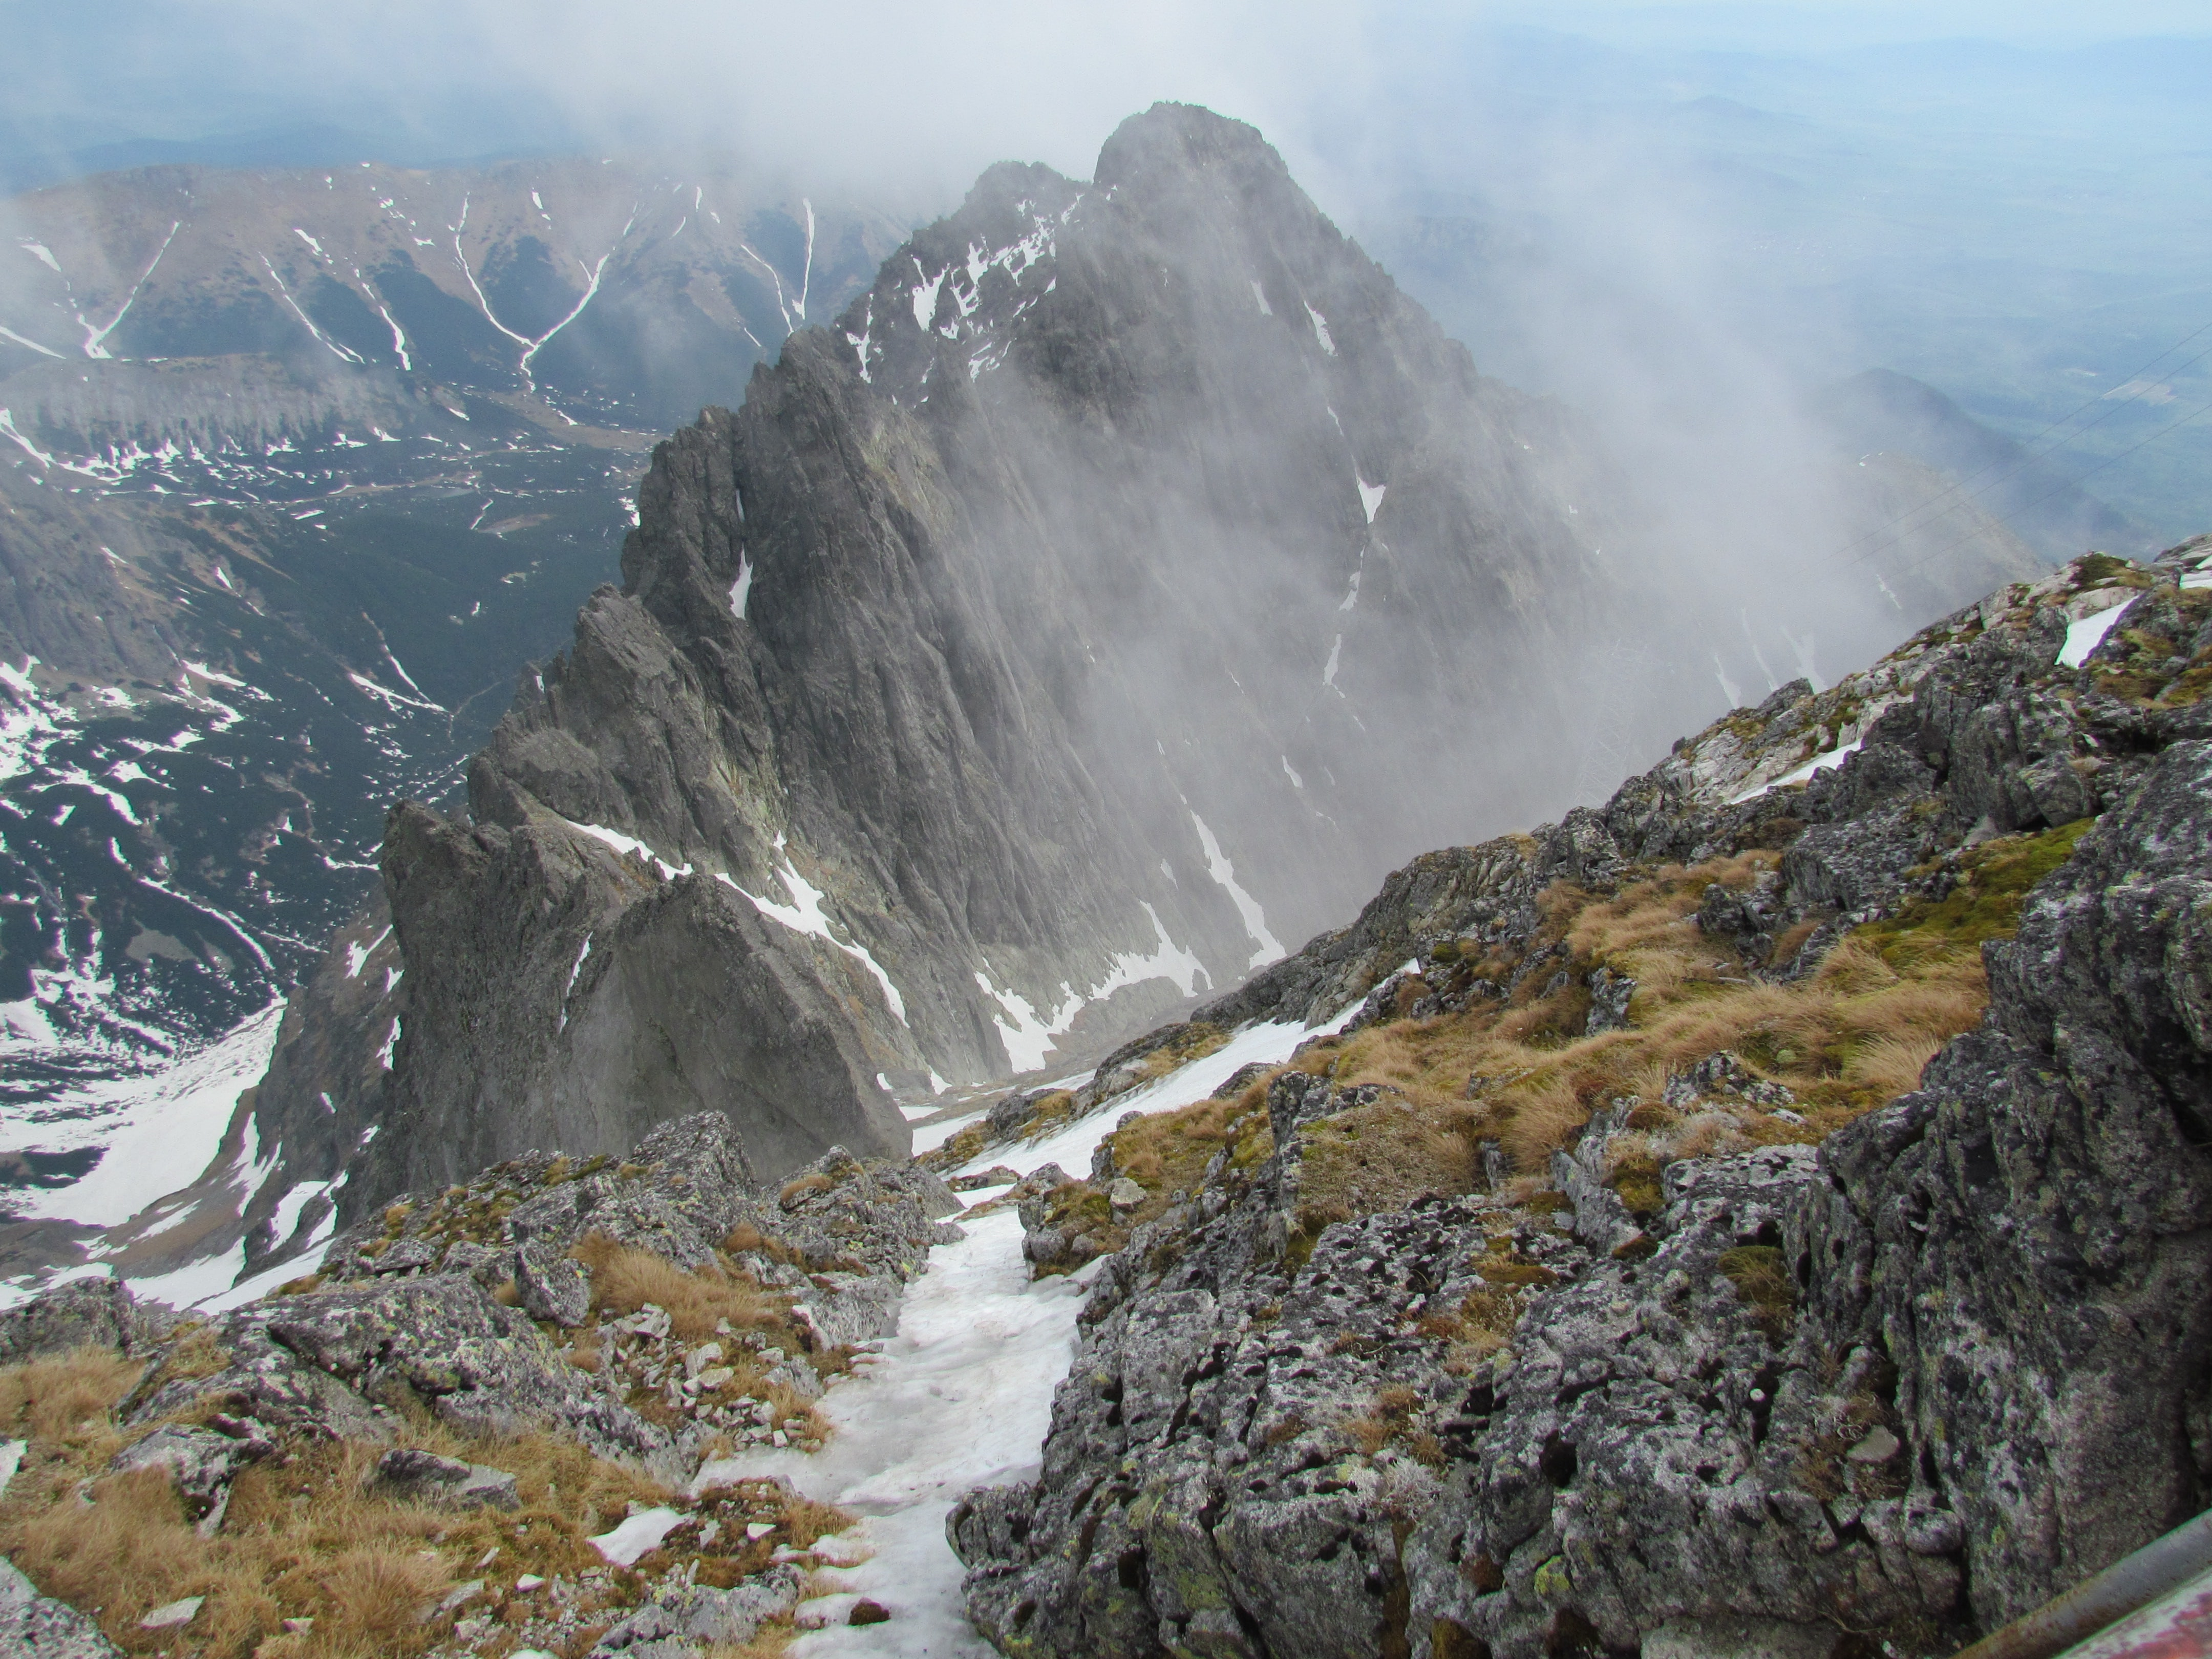 gray and white rugged mountain with mist at daytime